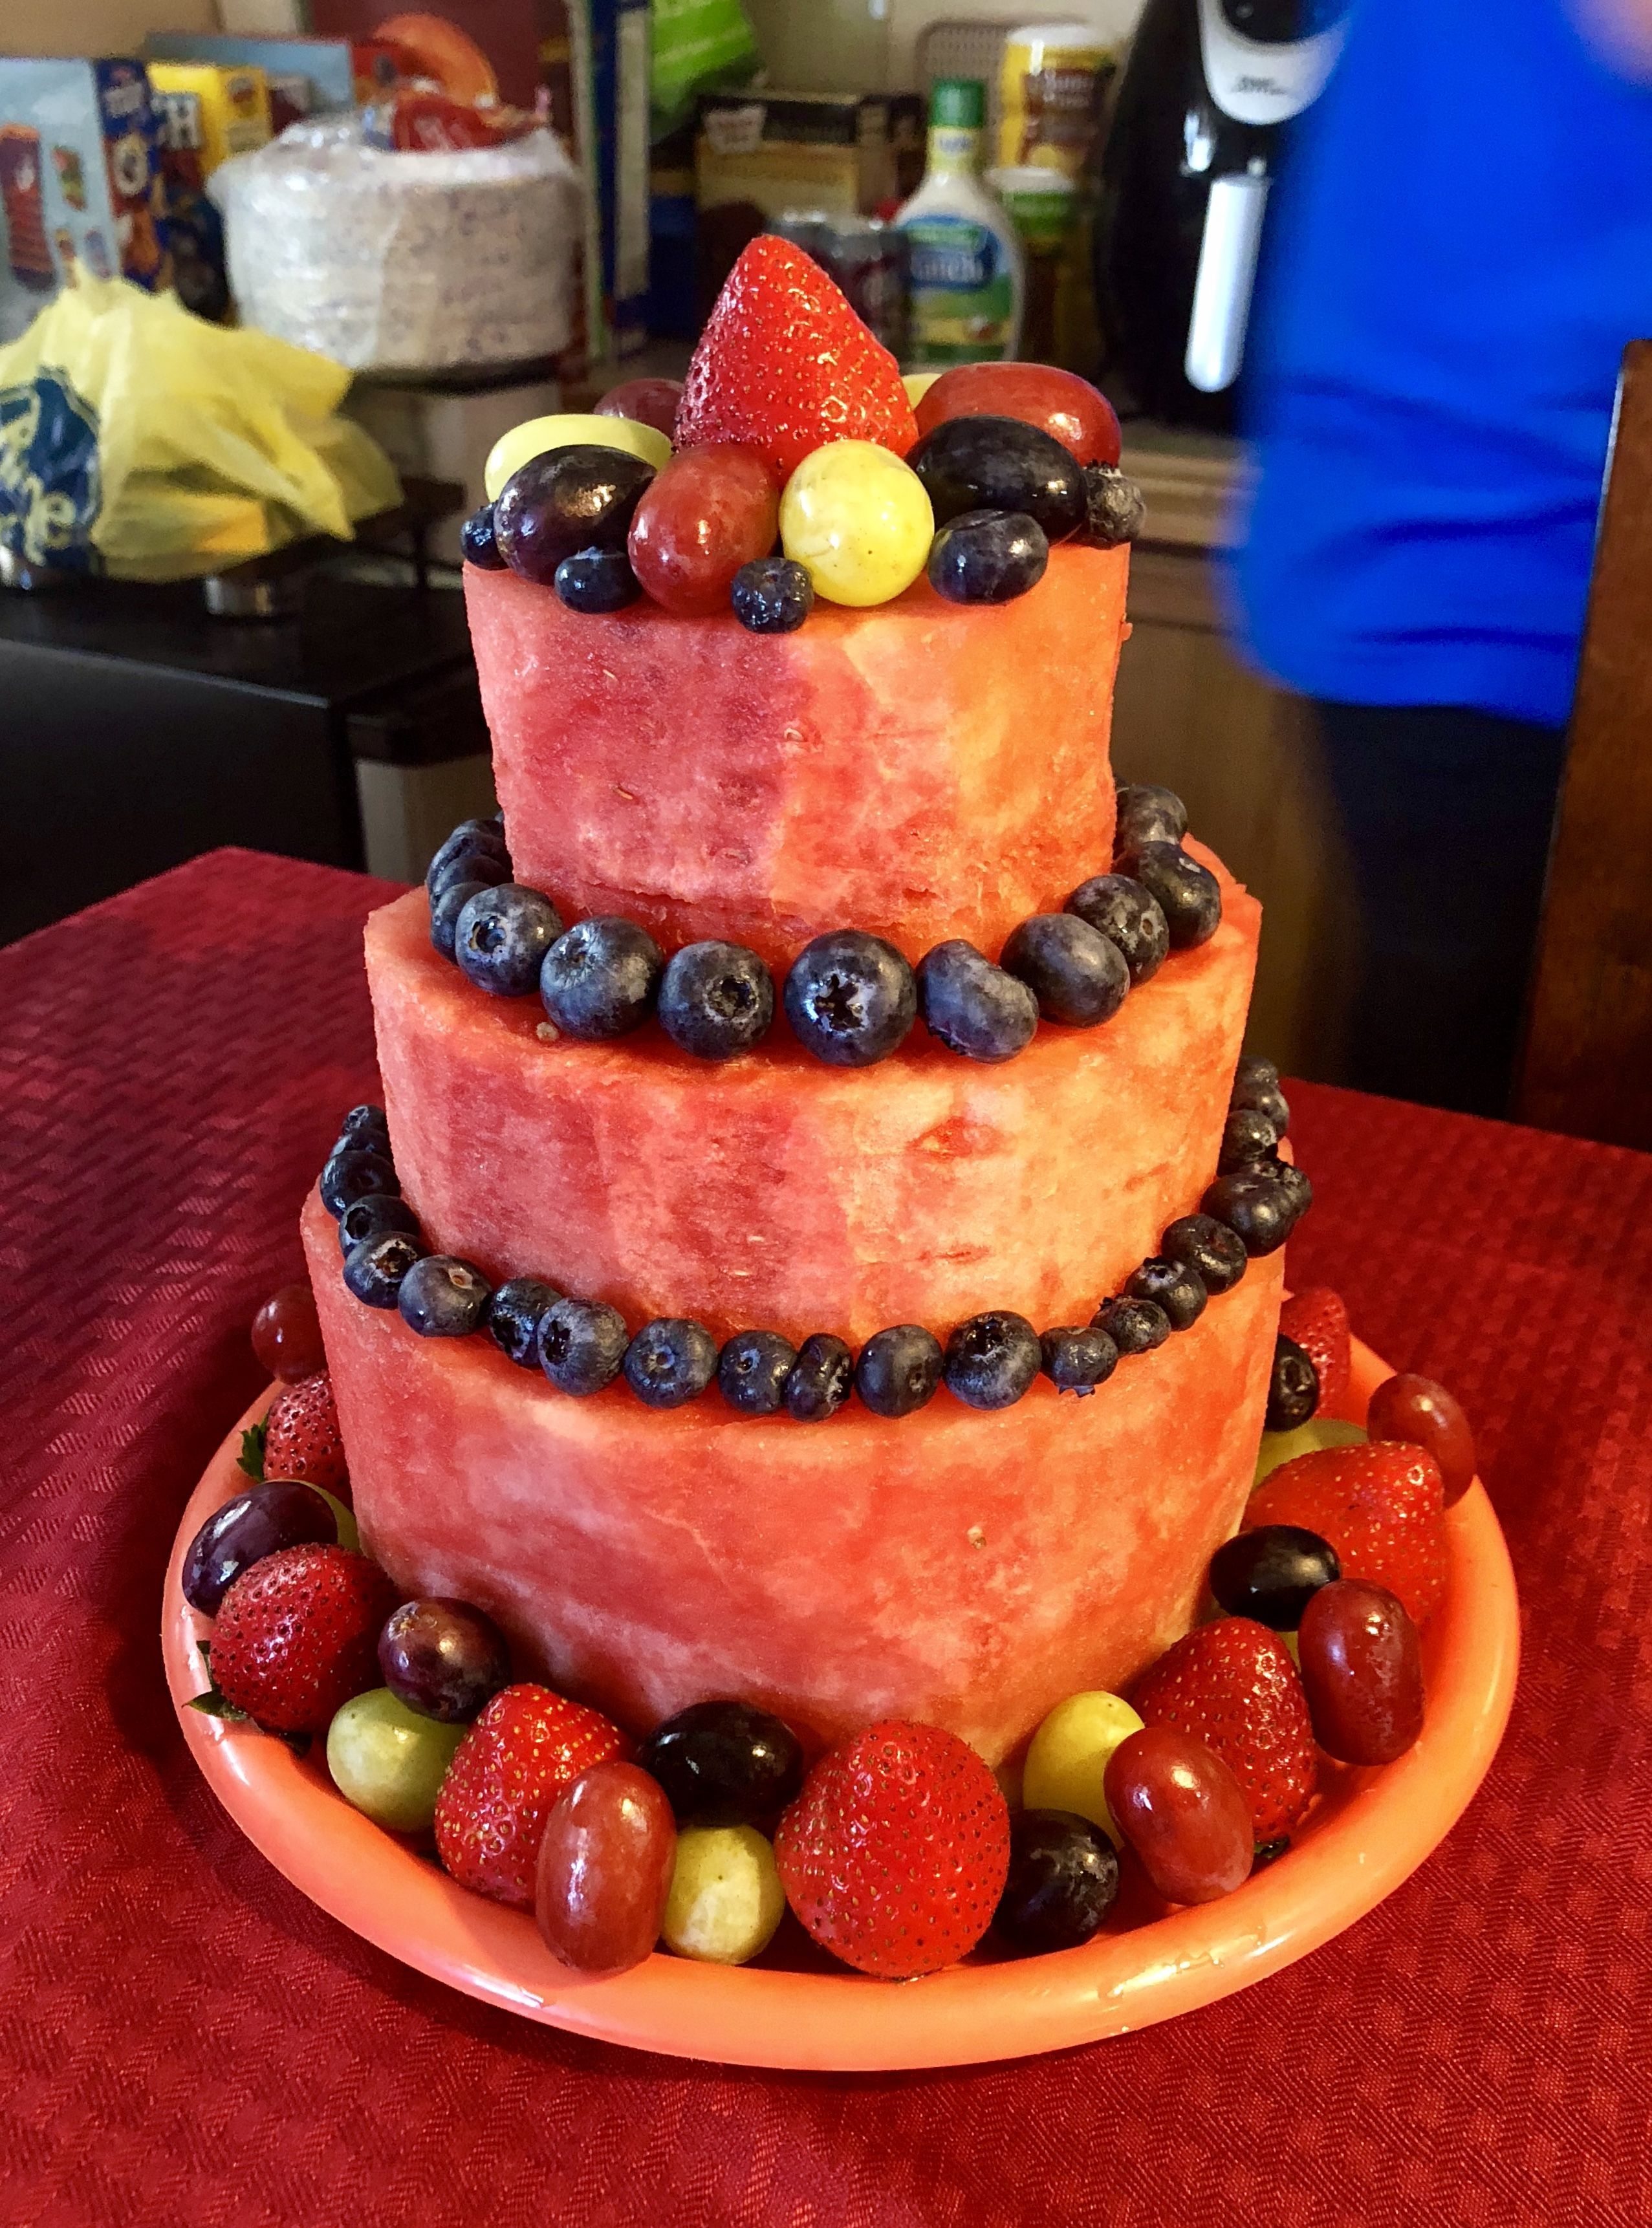 Fruit cake watermelon grapes blueberries and